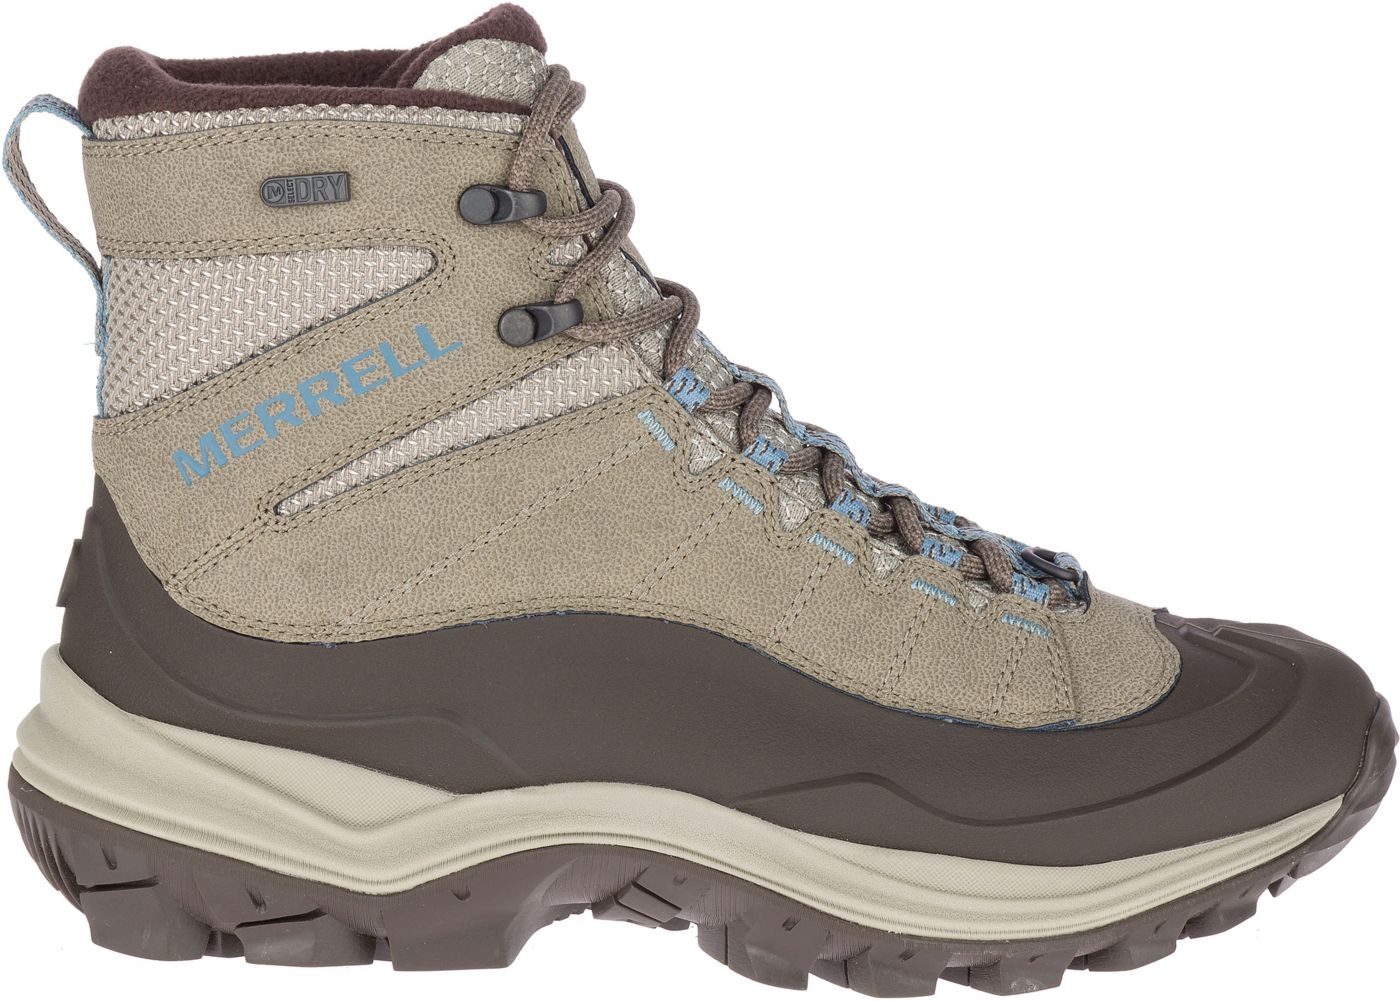 Merrell Women's Thermo Chill Mid Shell 200g Waterproof Hiking Boots